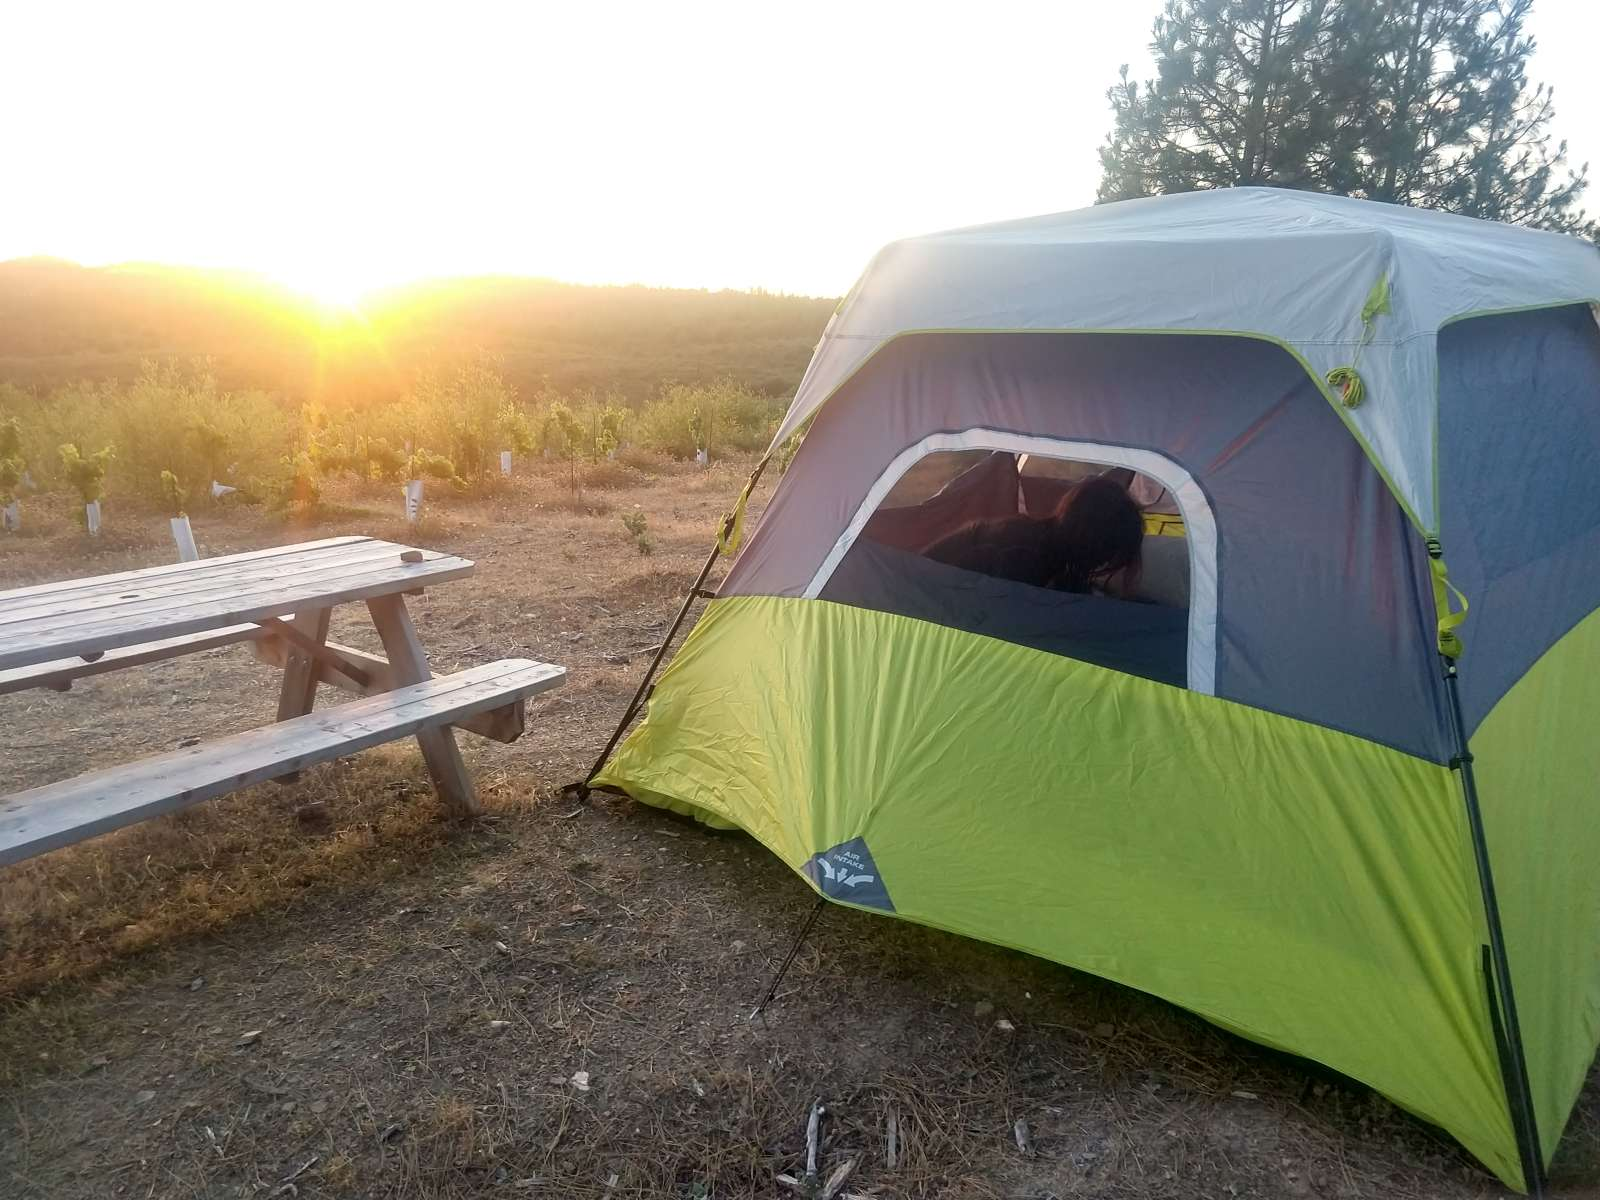 Pleasing Yosemite Garden Camp Tent Site 2 Alphanode Cool Chair Designs And Ideas Alphanodeonline